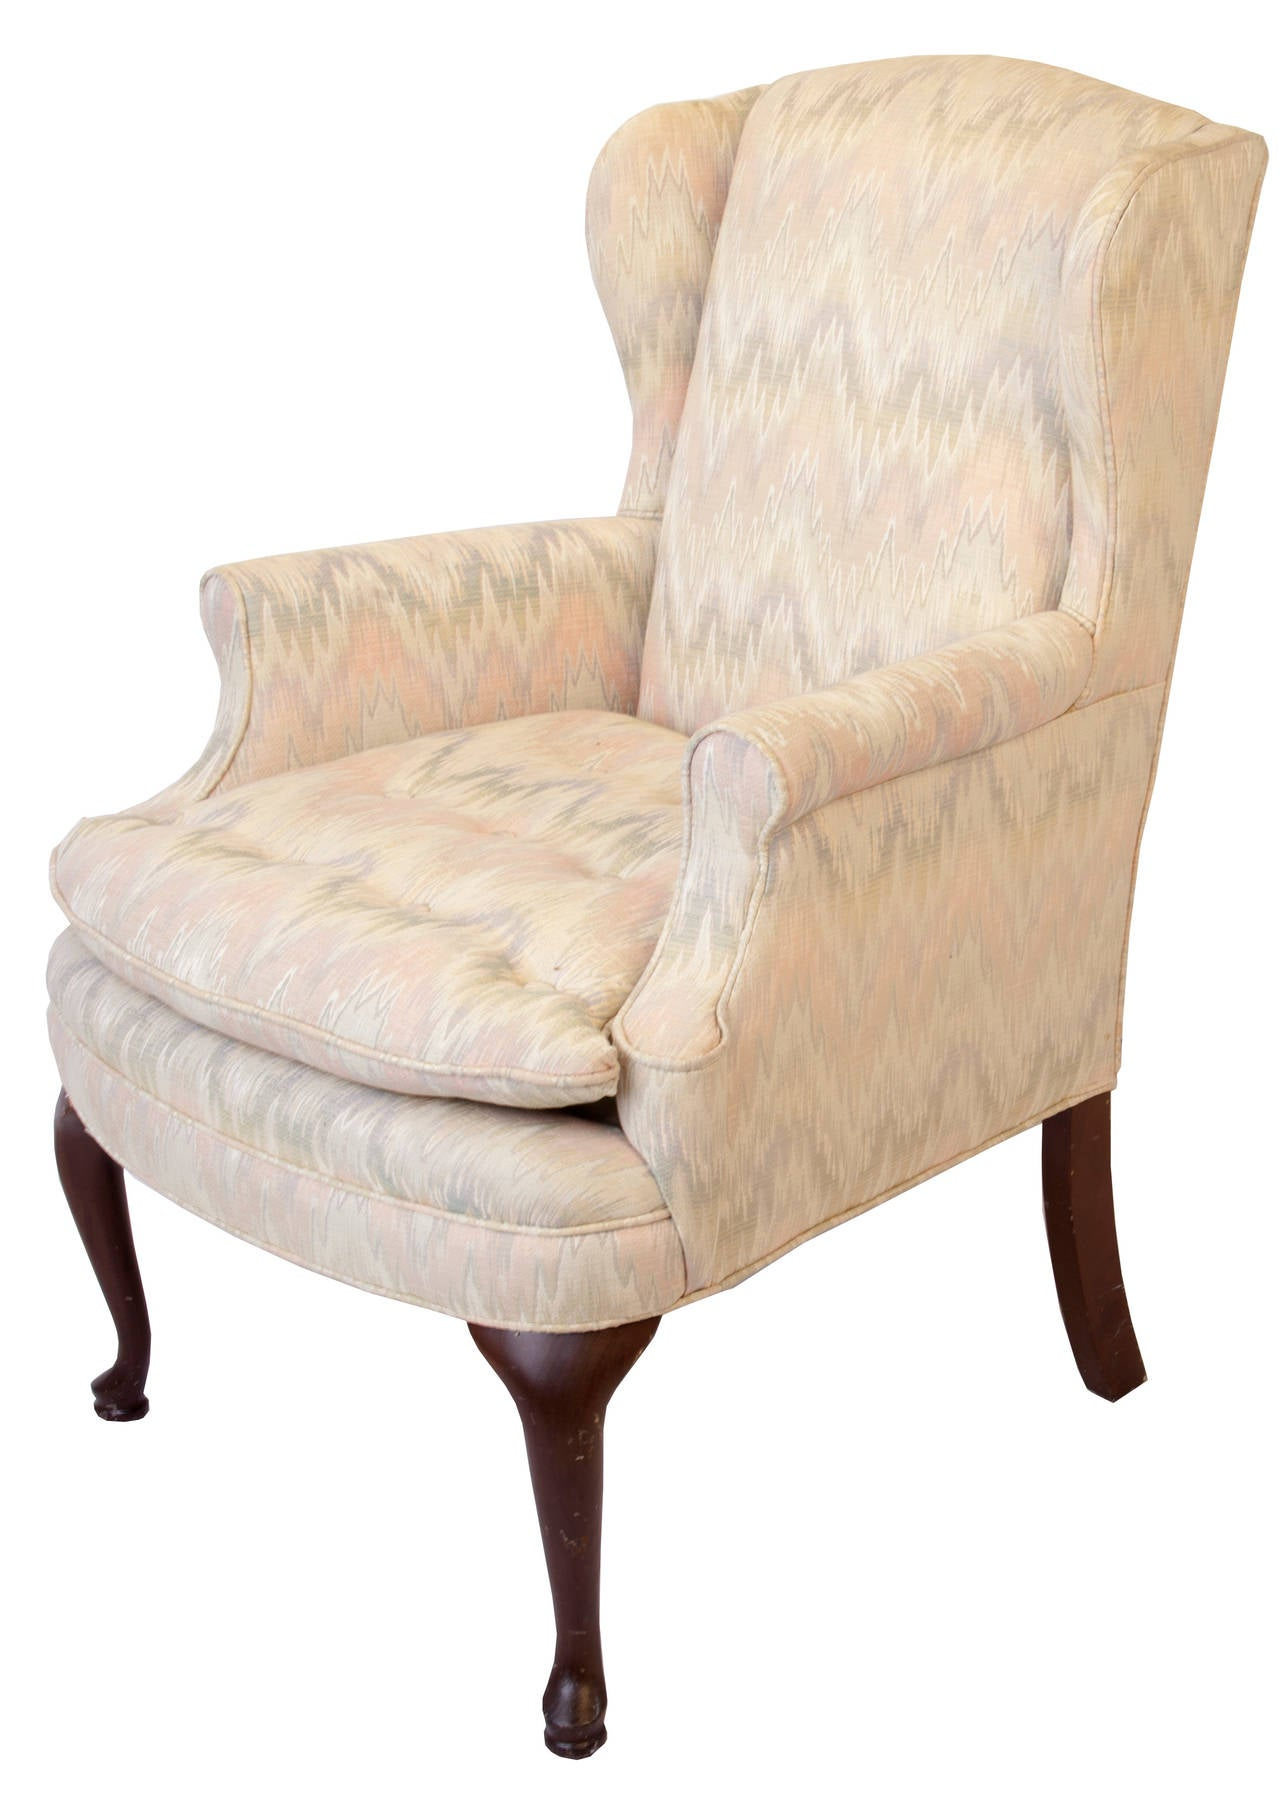 Queen Anne Style Upholstered Wing Chair at 1stdibs